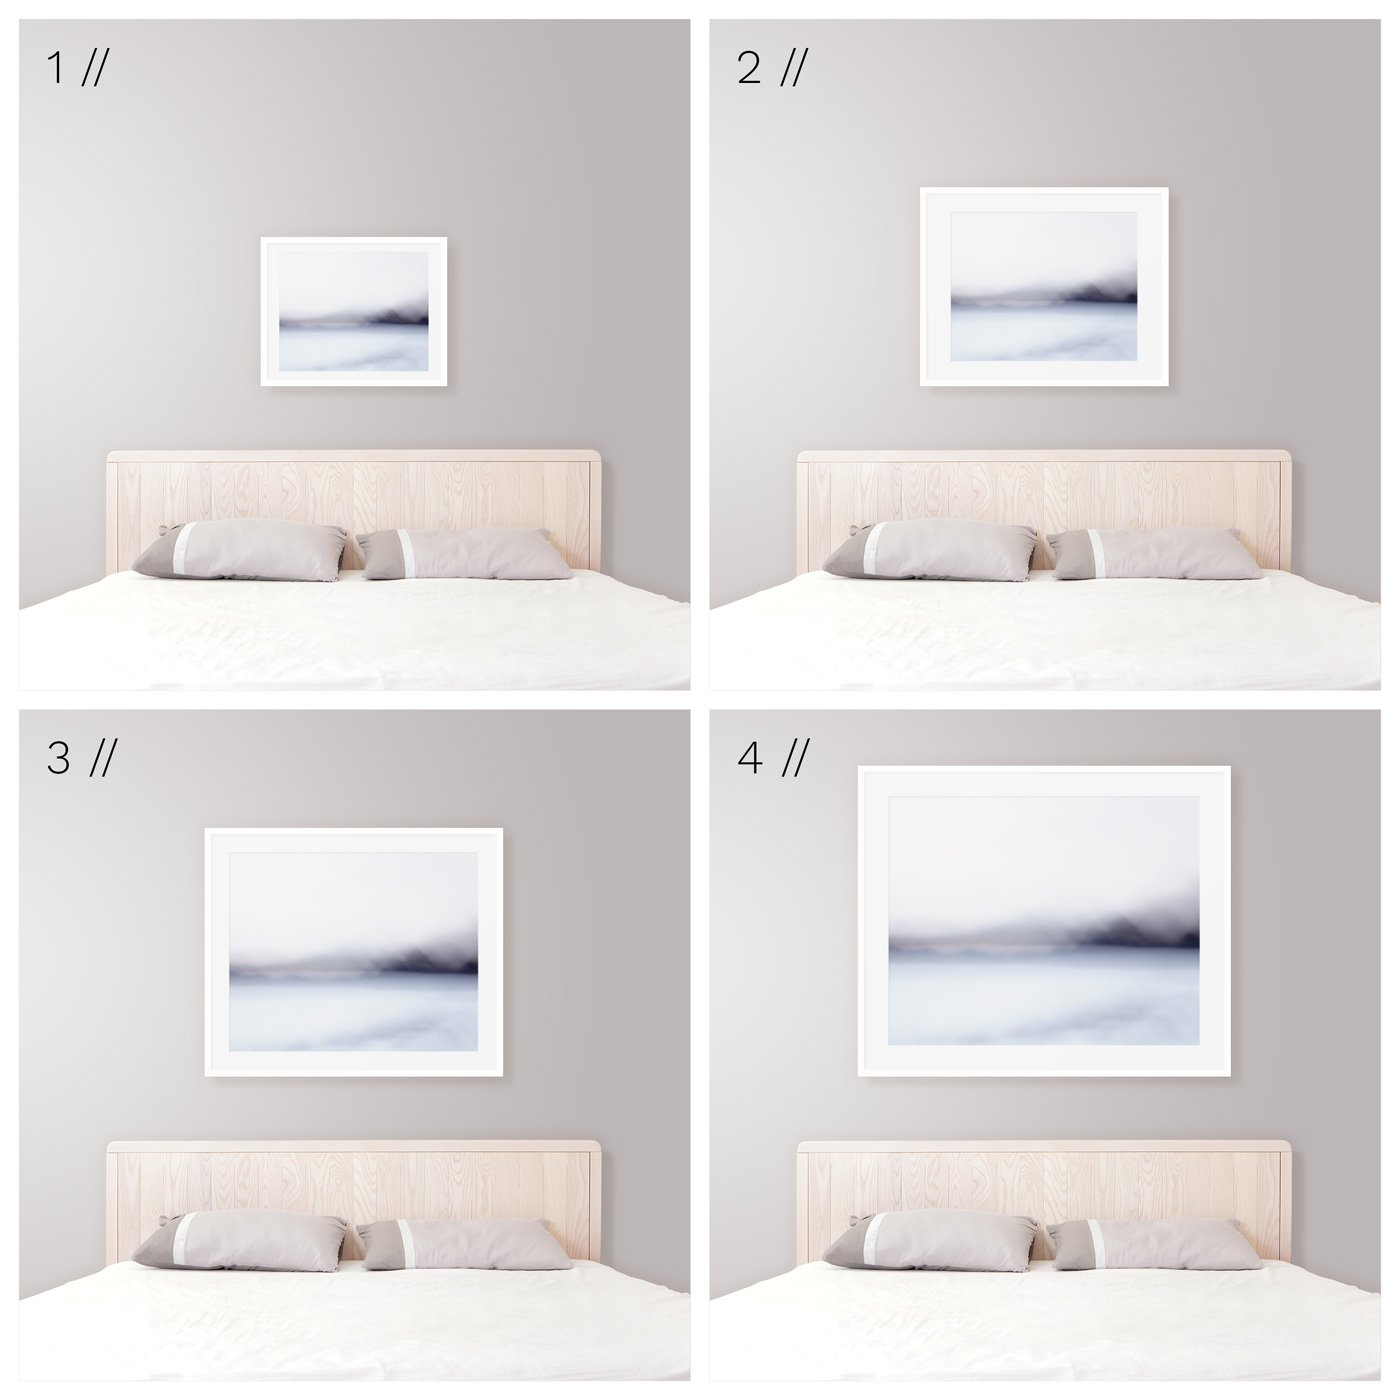 Ideal Art Size Above King Bed - Modern Coastal Bedroom ...